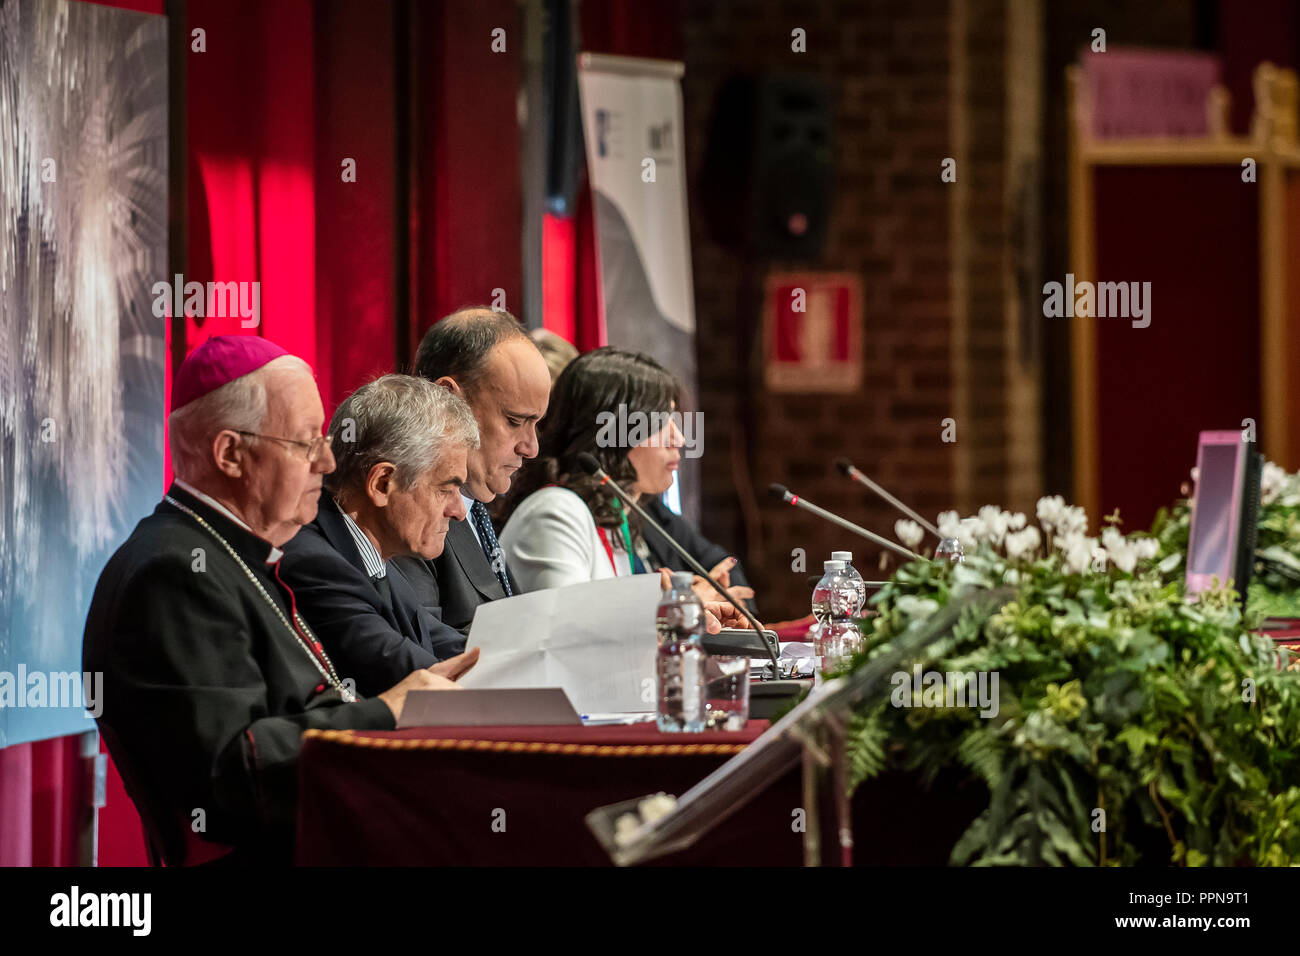 Italy Piedmont Turin 27th September 2018 - The MIBAC returns to the public the chapel of the Shroud of Guarino Guarini - Royal Theater Foyer del Toro -Press day - authority Credit: Realy Easy Star/Alamy Live News - Stock Image